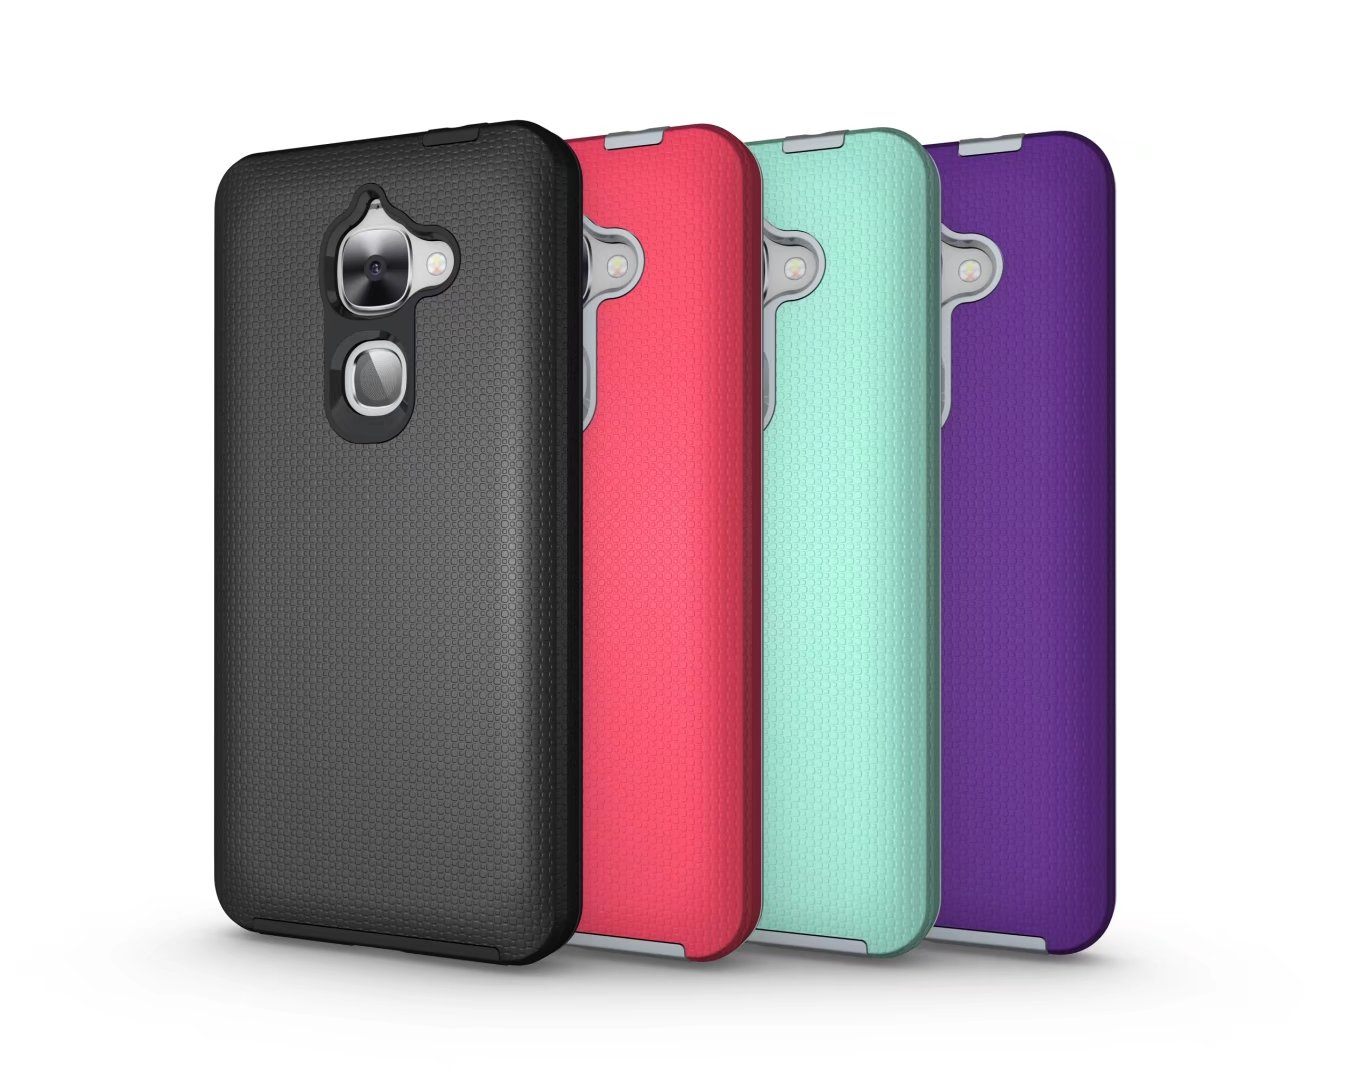 For LeEco Le2 Le 2Pro Case Luxury Hard PC+TPU Armor Protective back cover case for letv le 2 pro X620 Full cover phone shell (China)